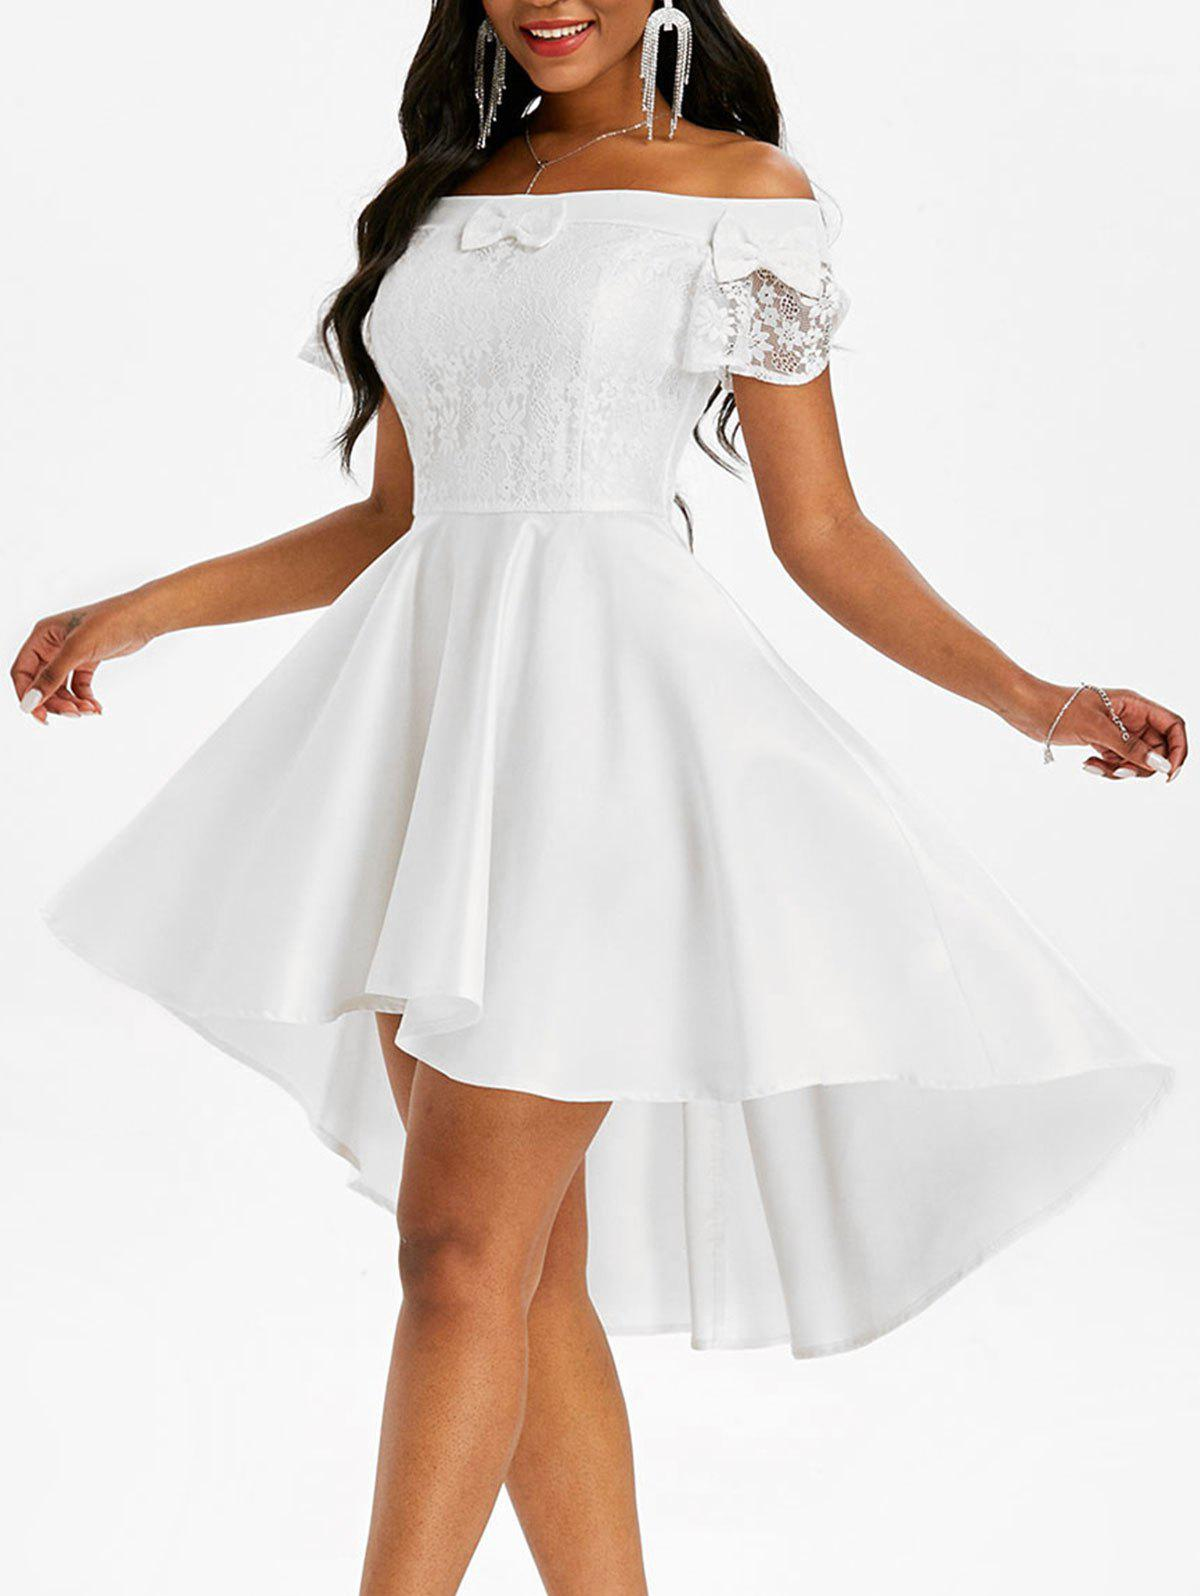 Lace Insert Bowknot Off Shoulder High Low Dress - WHITE XL